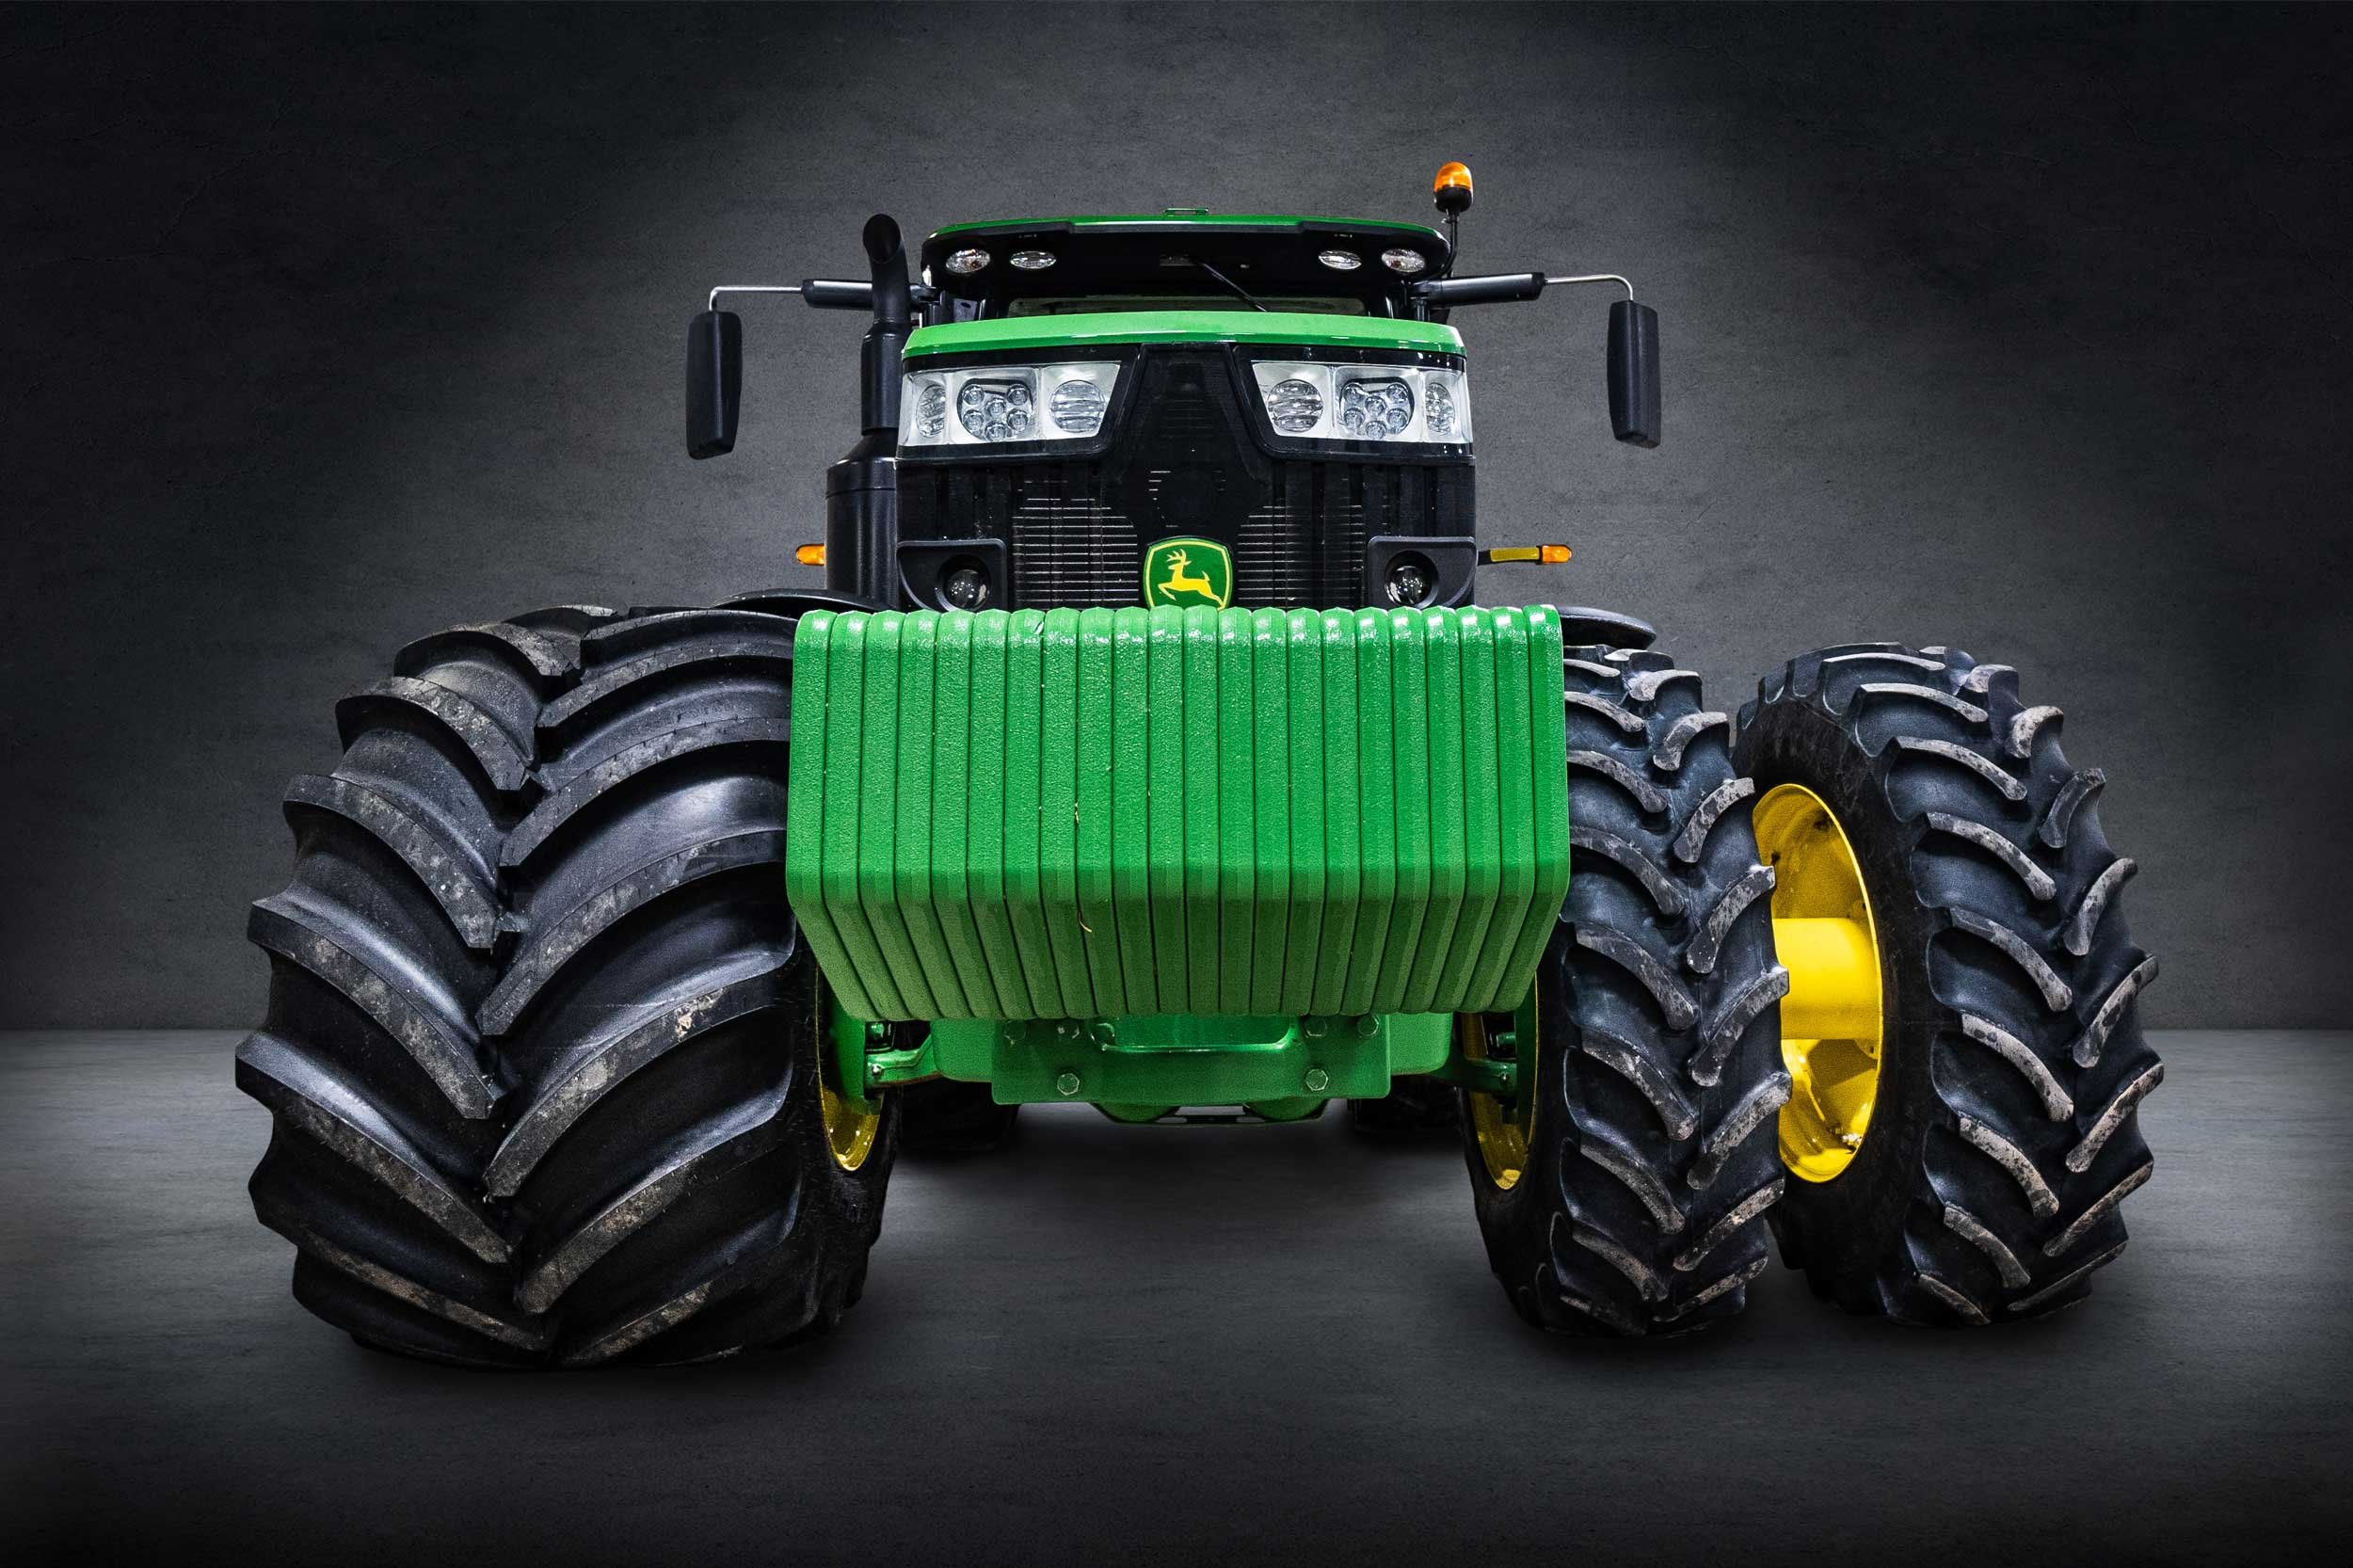 tractor tire comparison between Goodyear LSW super singles and duals